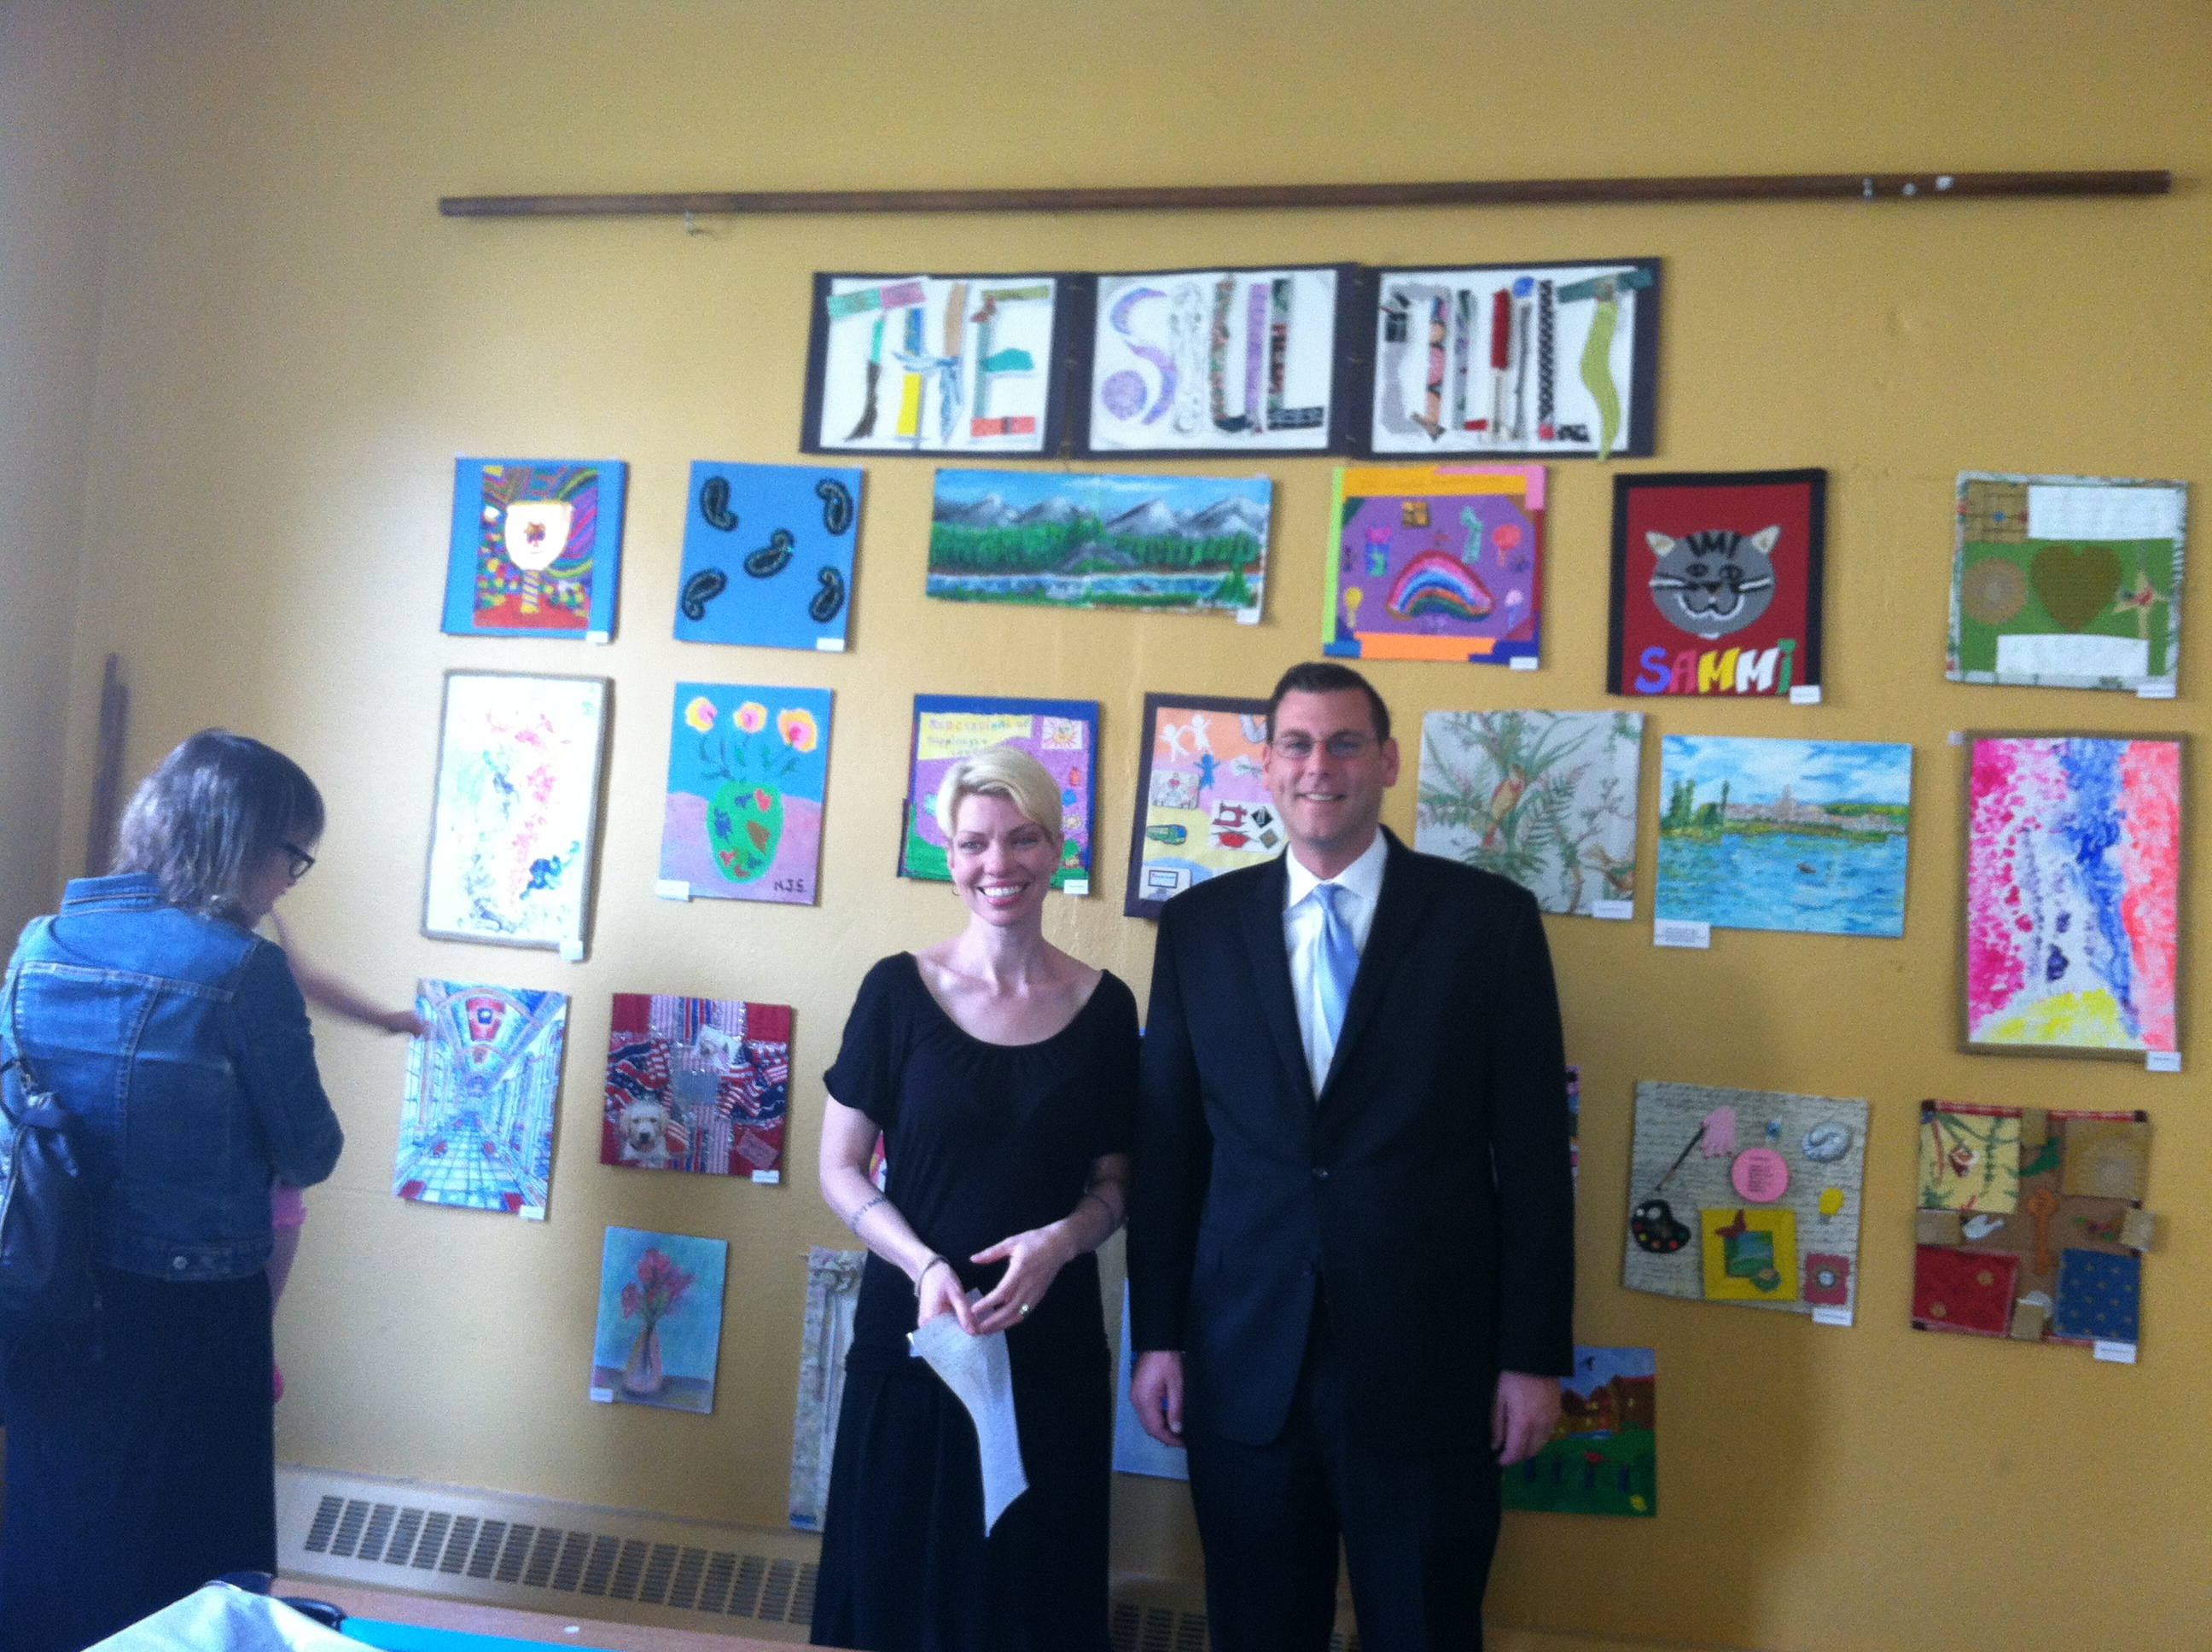 On Friday, June 17, 2013, Assemblyman Braunstein attended the Services Now for Adult Persons, Inc. of Eastern Queens (SNAP) Seniors Partnering with Artists Citywide (SPARC) Soul Quilt Ceremony. Assemb